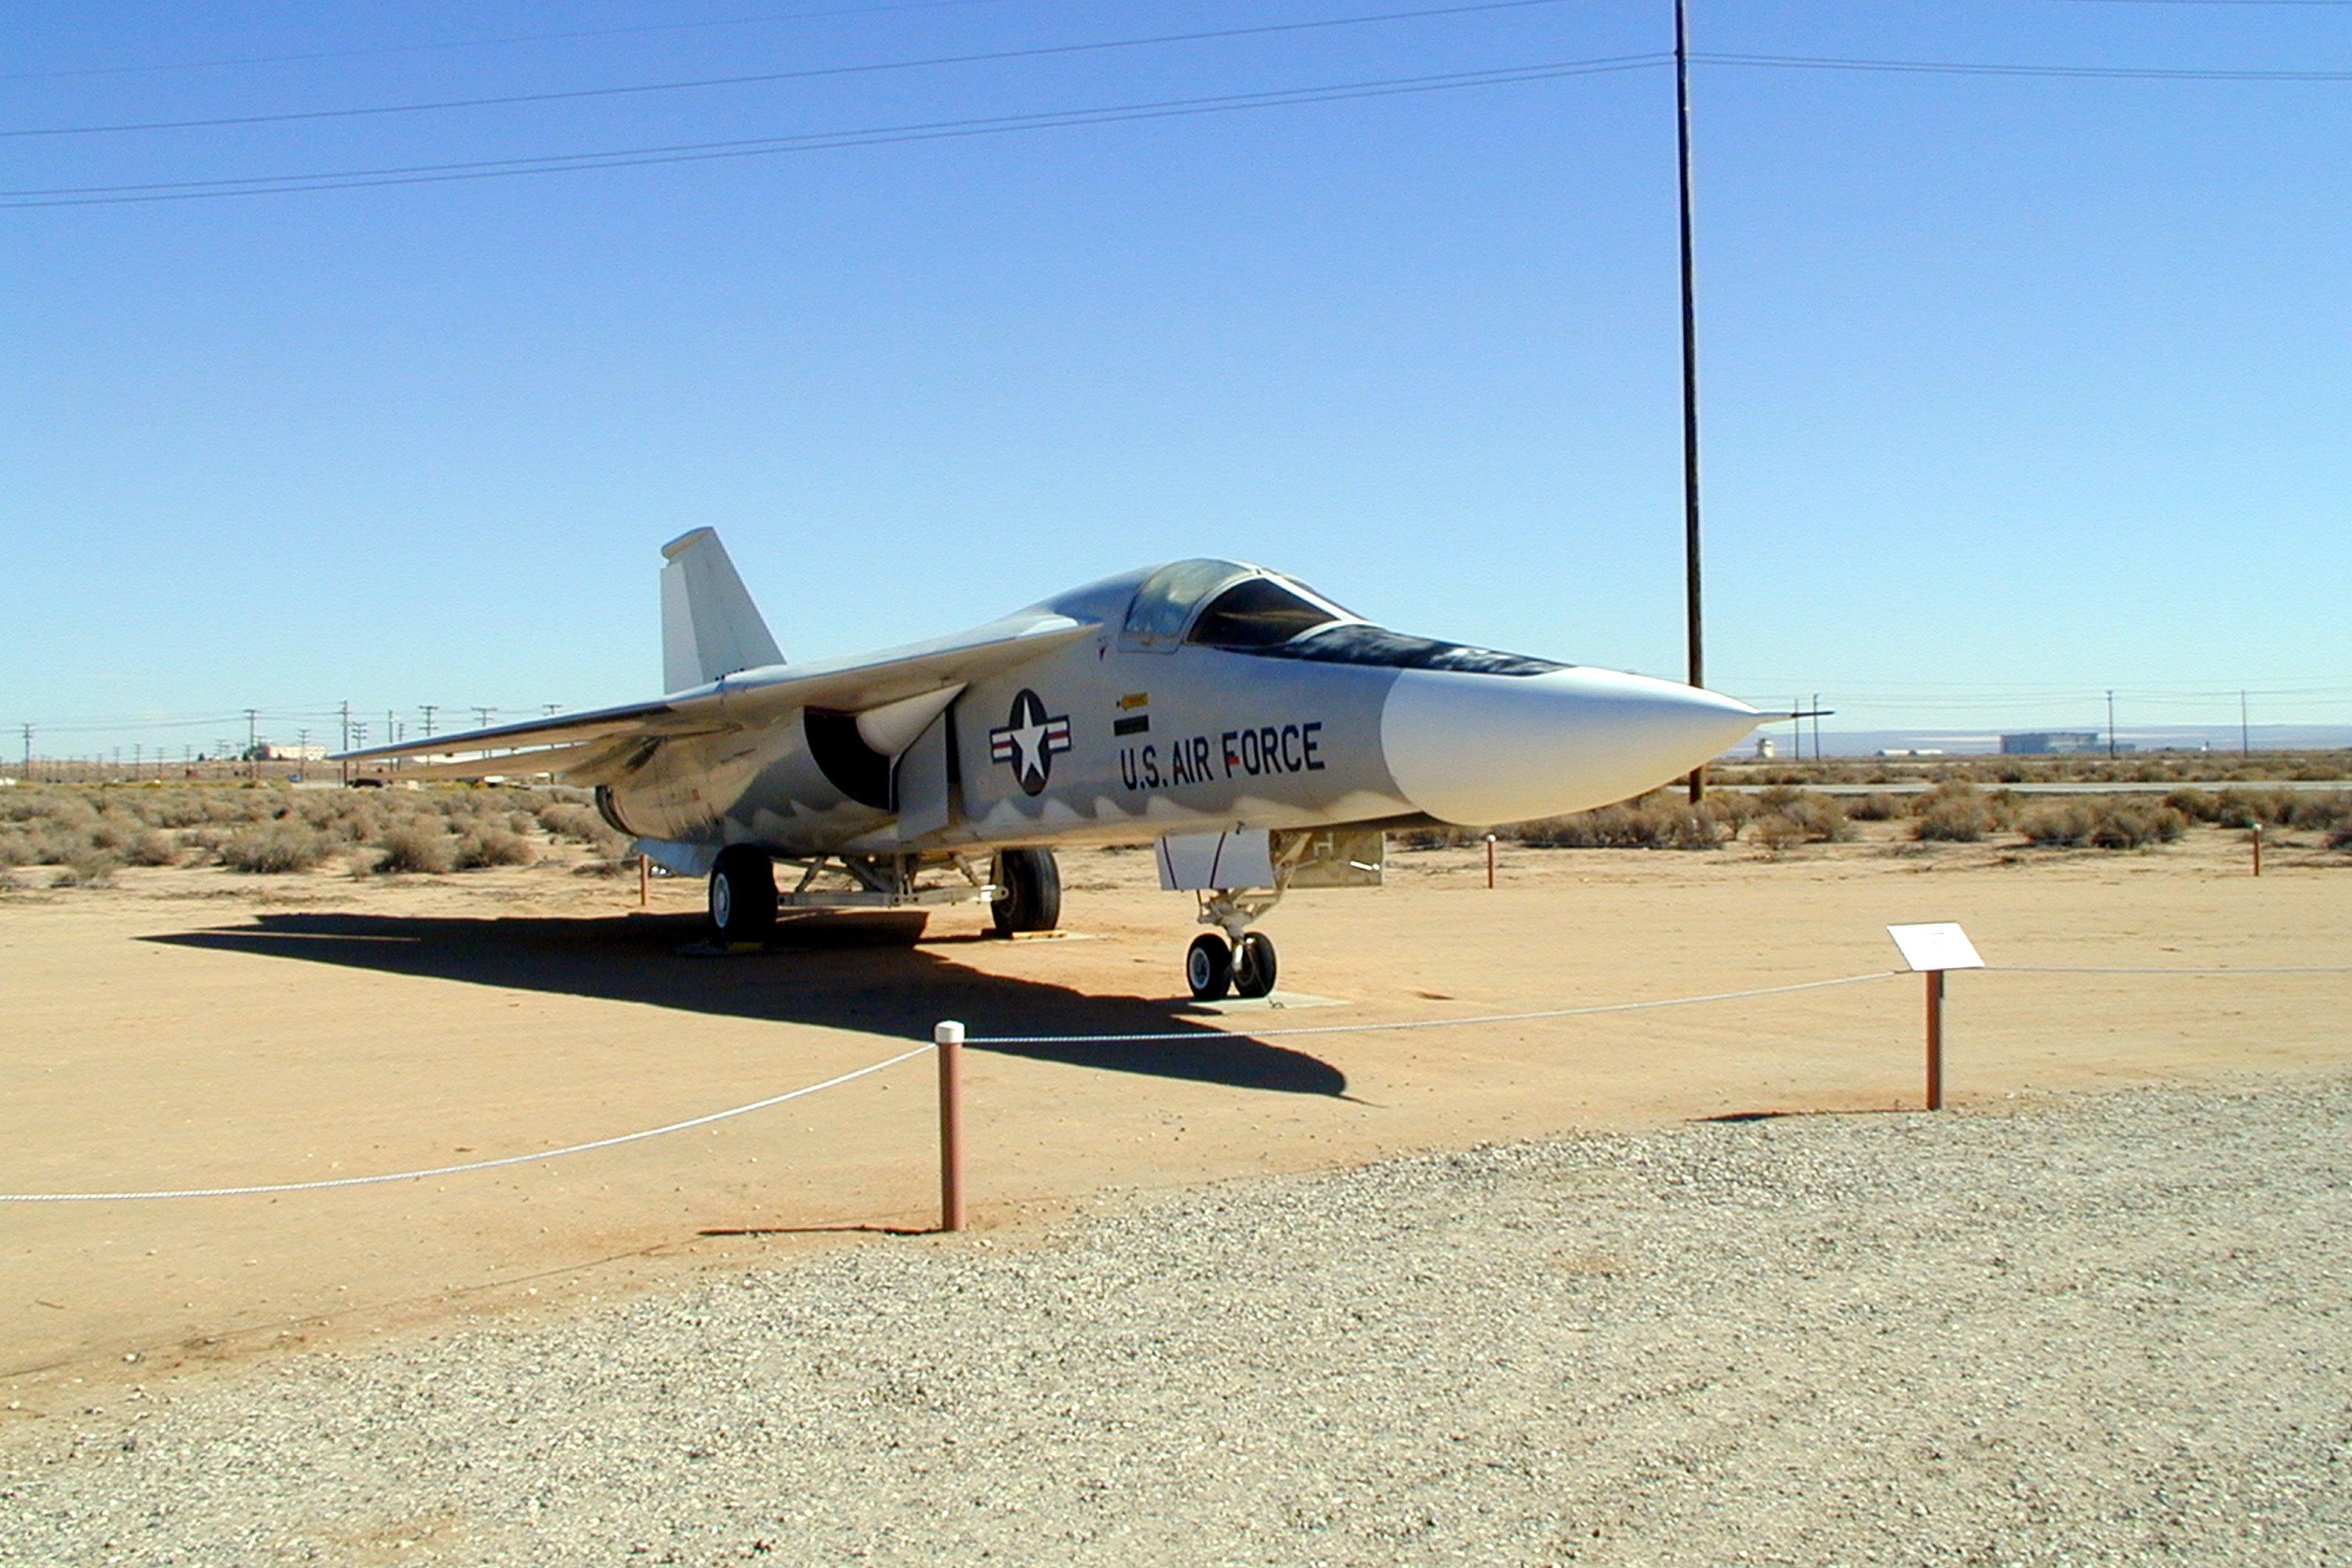 General Dynamics F-111A Aardvark tactical strike fighter ...